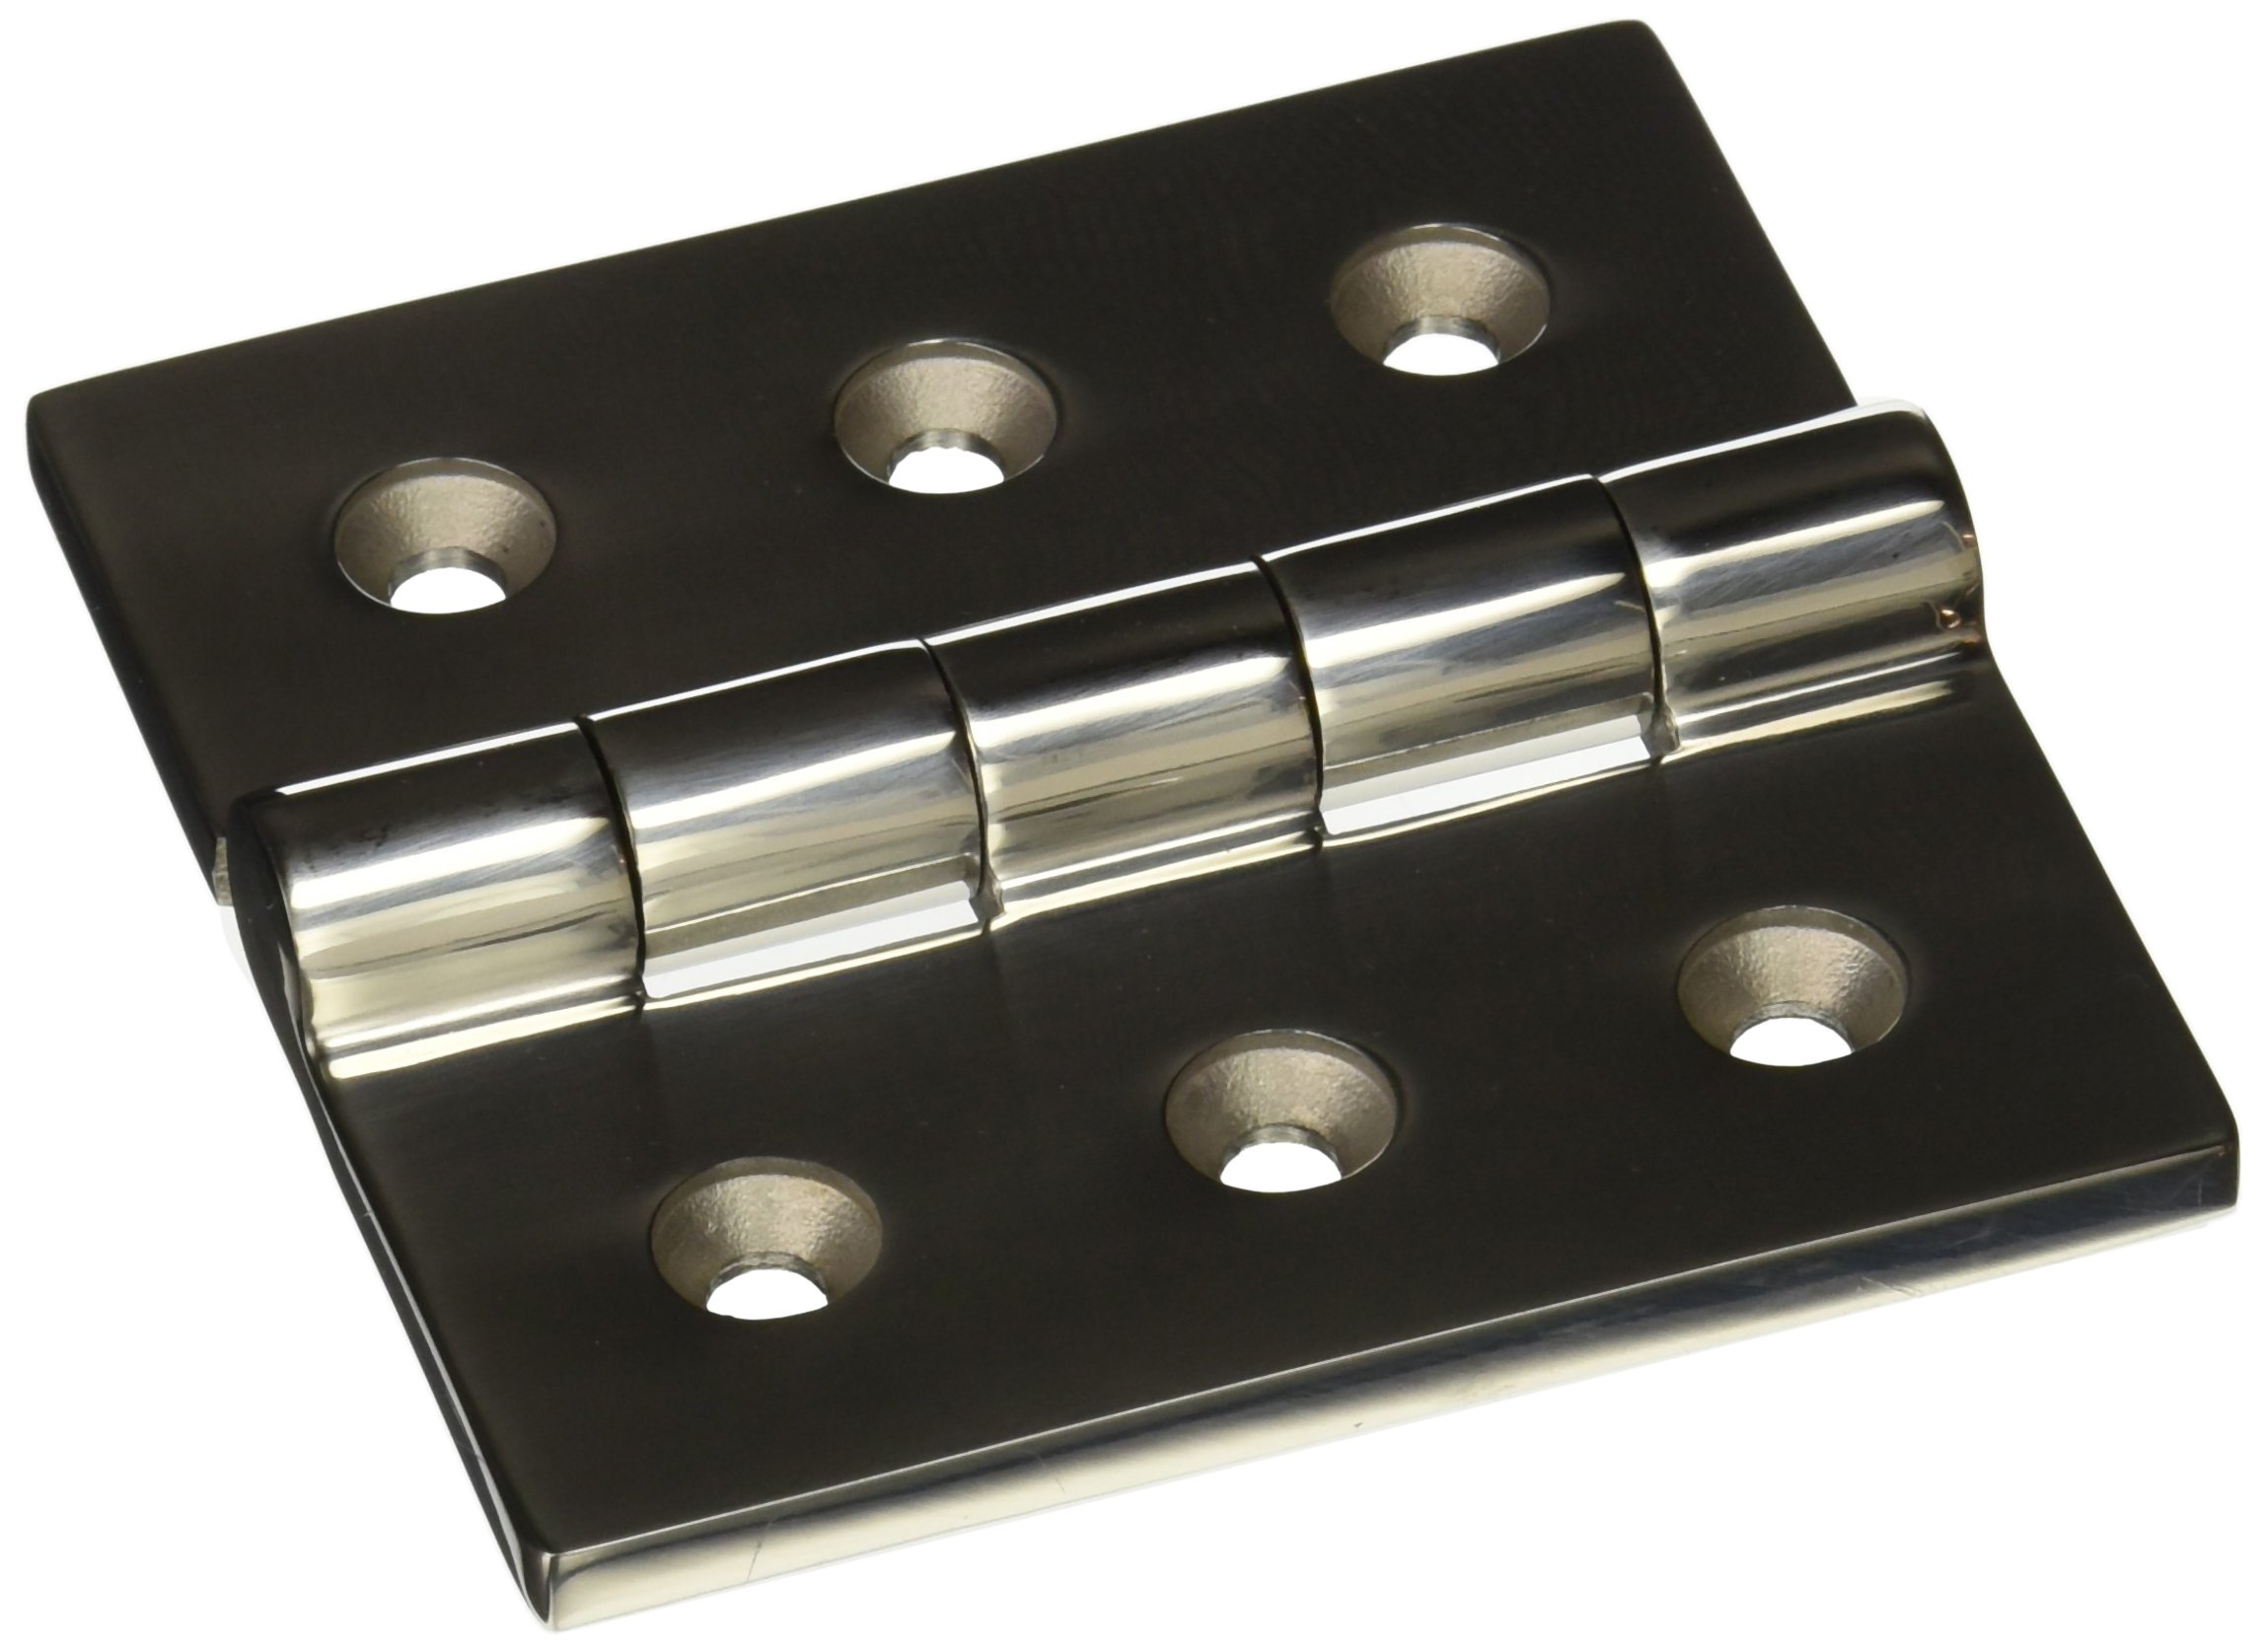 Sugatsune LSF-100 Stainless Steel 316 Butt Hinge with Holes, Mirror Finish, 6mm Leaf Thickness, 100mm Open Width, 8mm Pin Diameter, 100mm Height